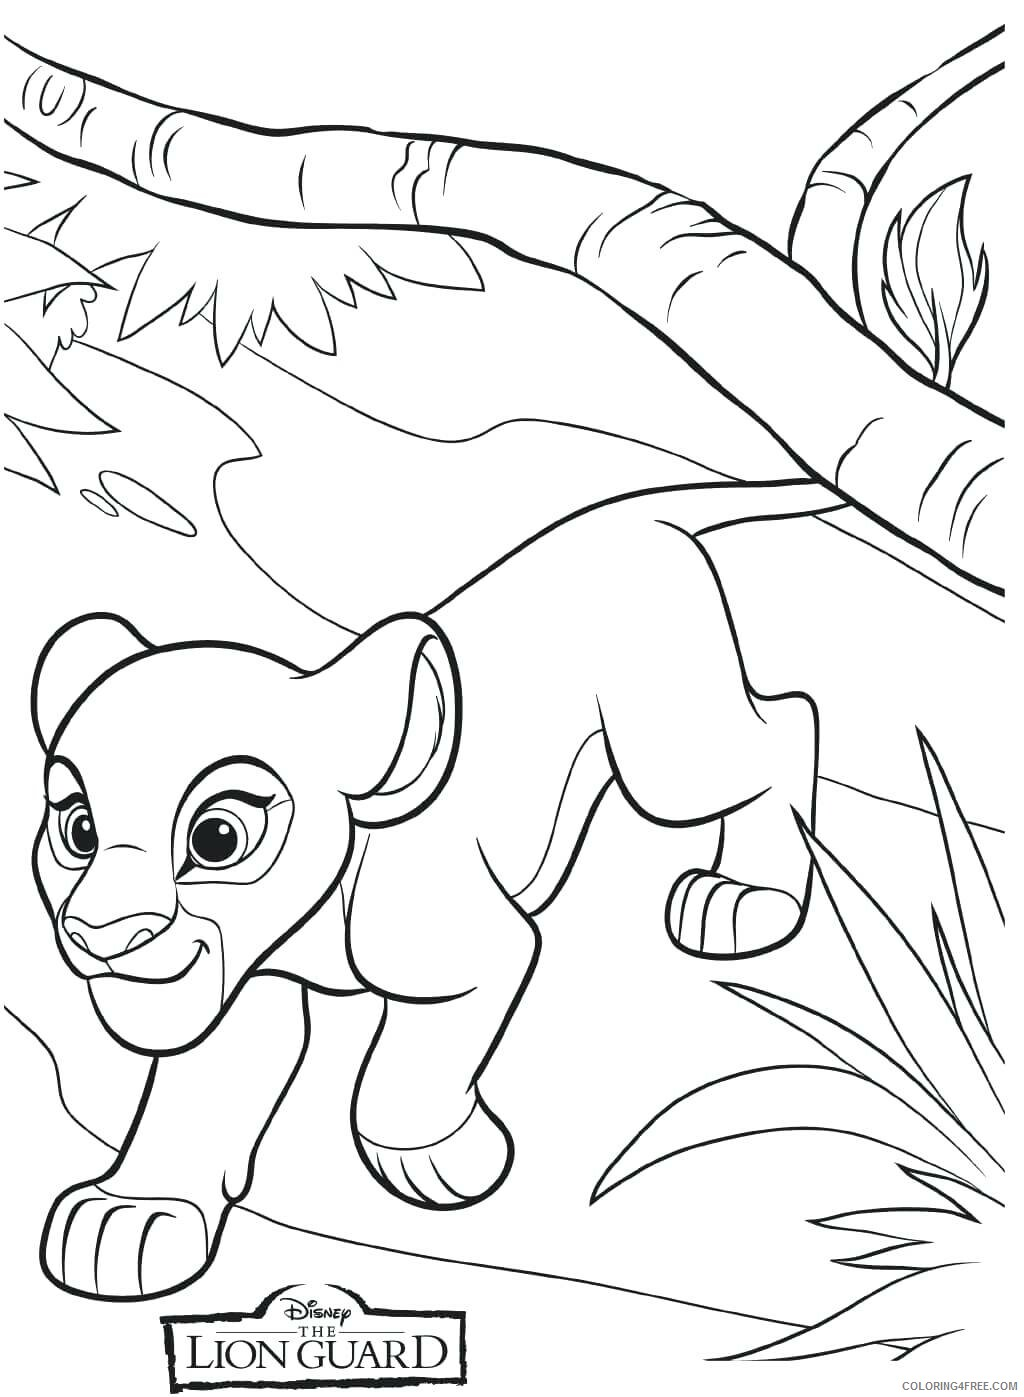 The Lion Guard Coloring Pages TV Film Kiara Lion Guard Printable 2020 09096 Coloring4free